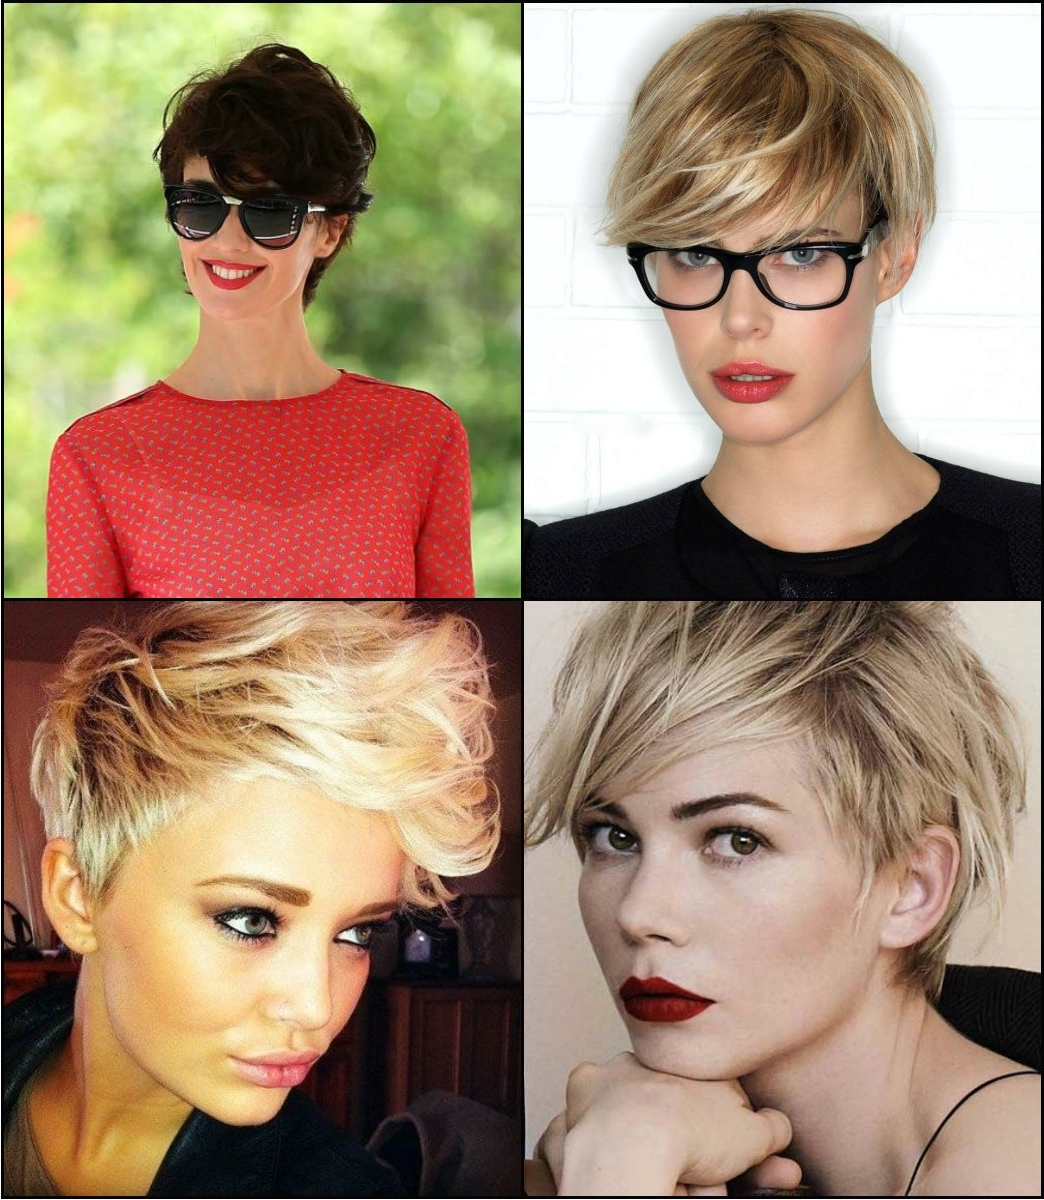 Long Pixie Haircuts You Have To Try In 2017 | Hairstyles 2017 Regarding Newest Pixie Hairstyles Colors (View 14 of 15)